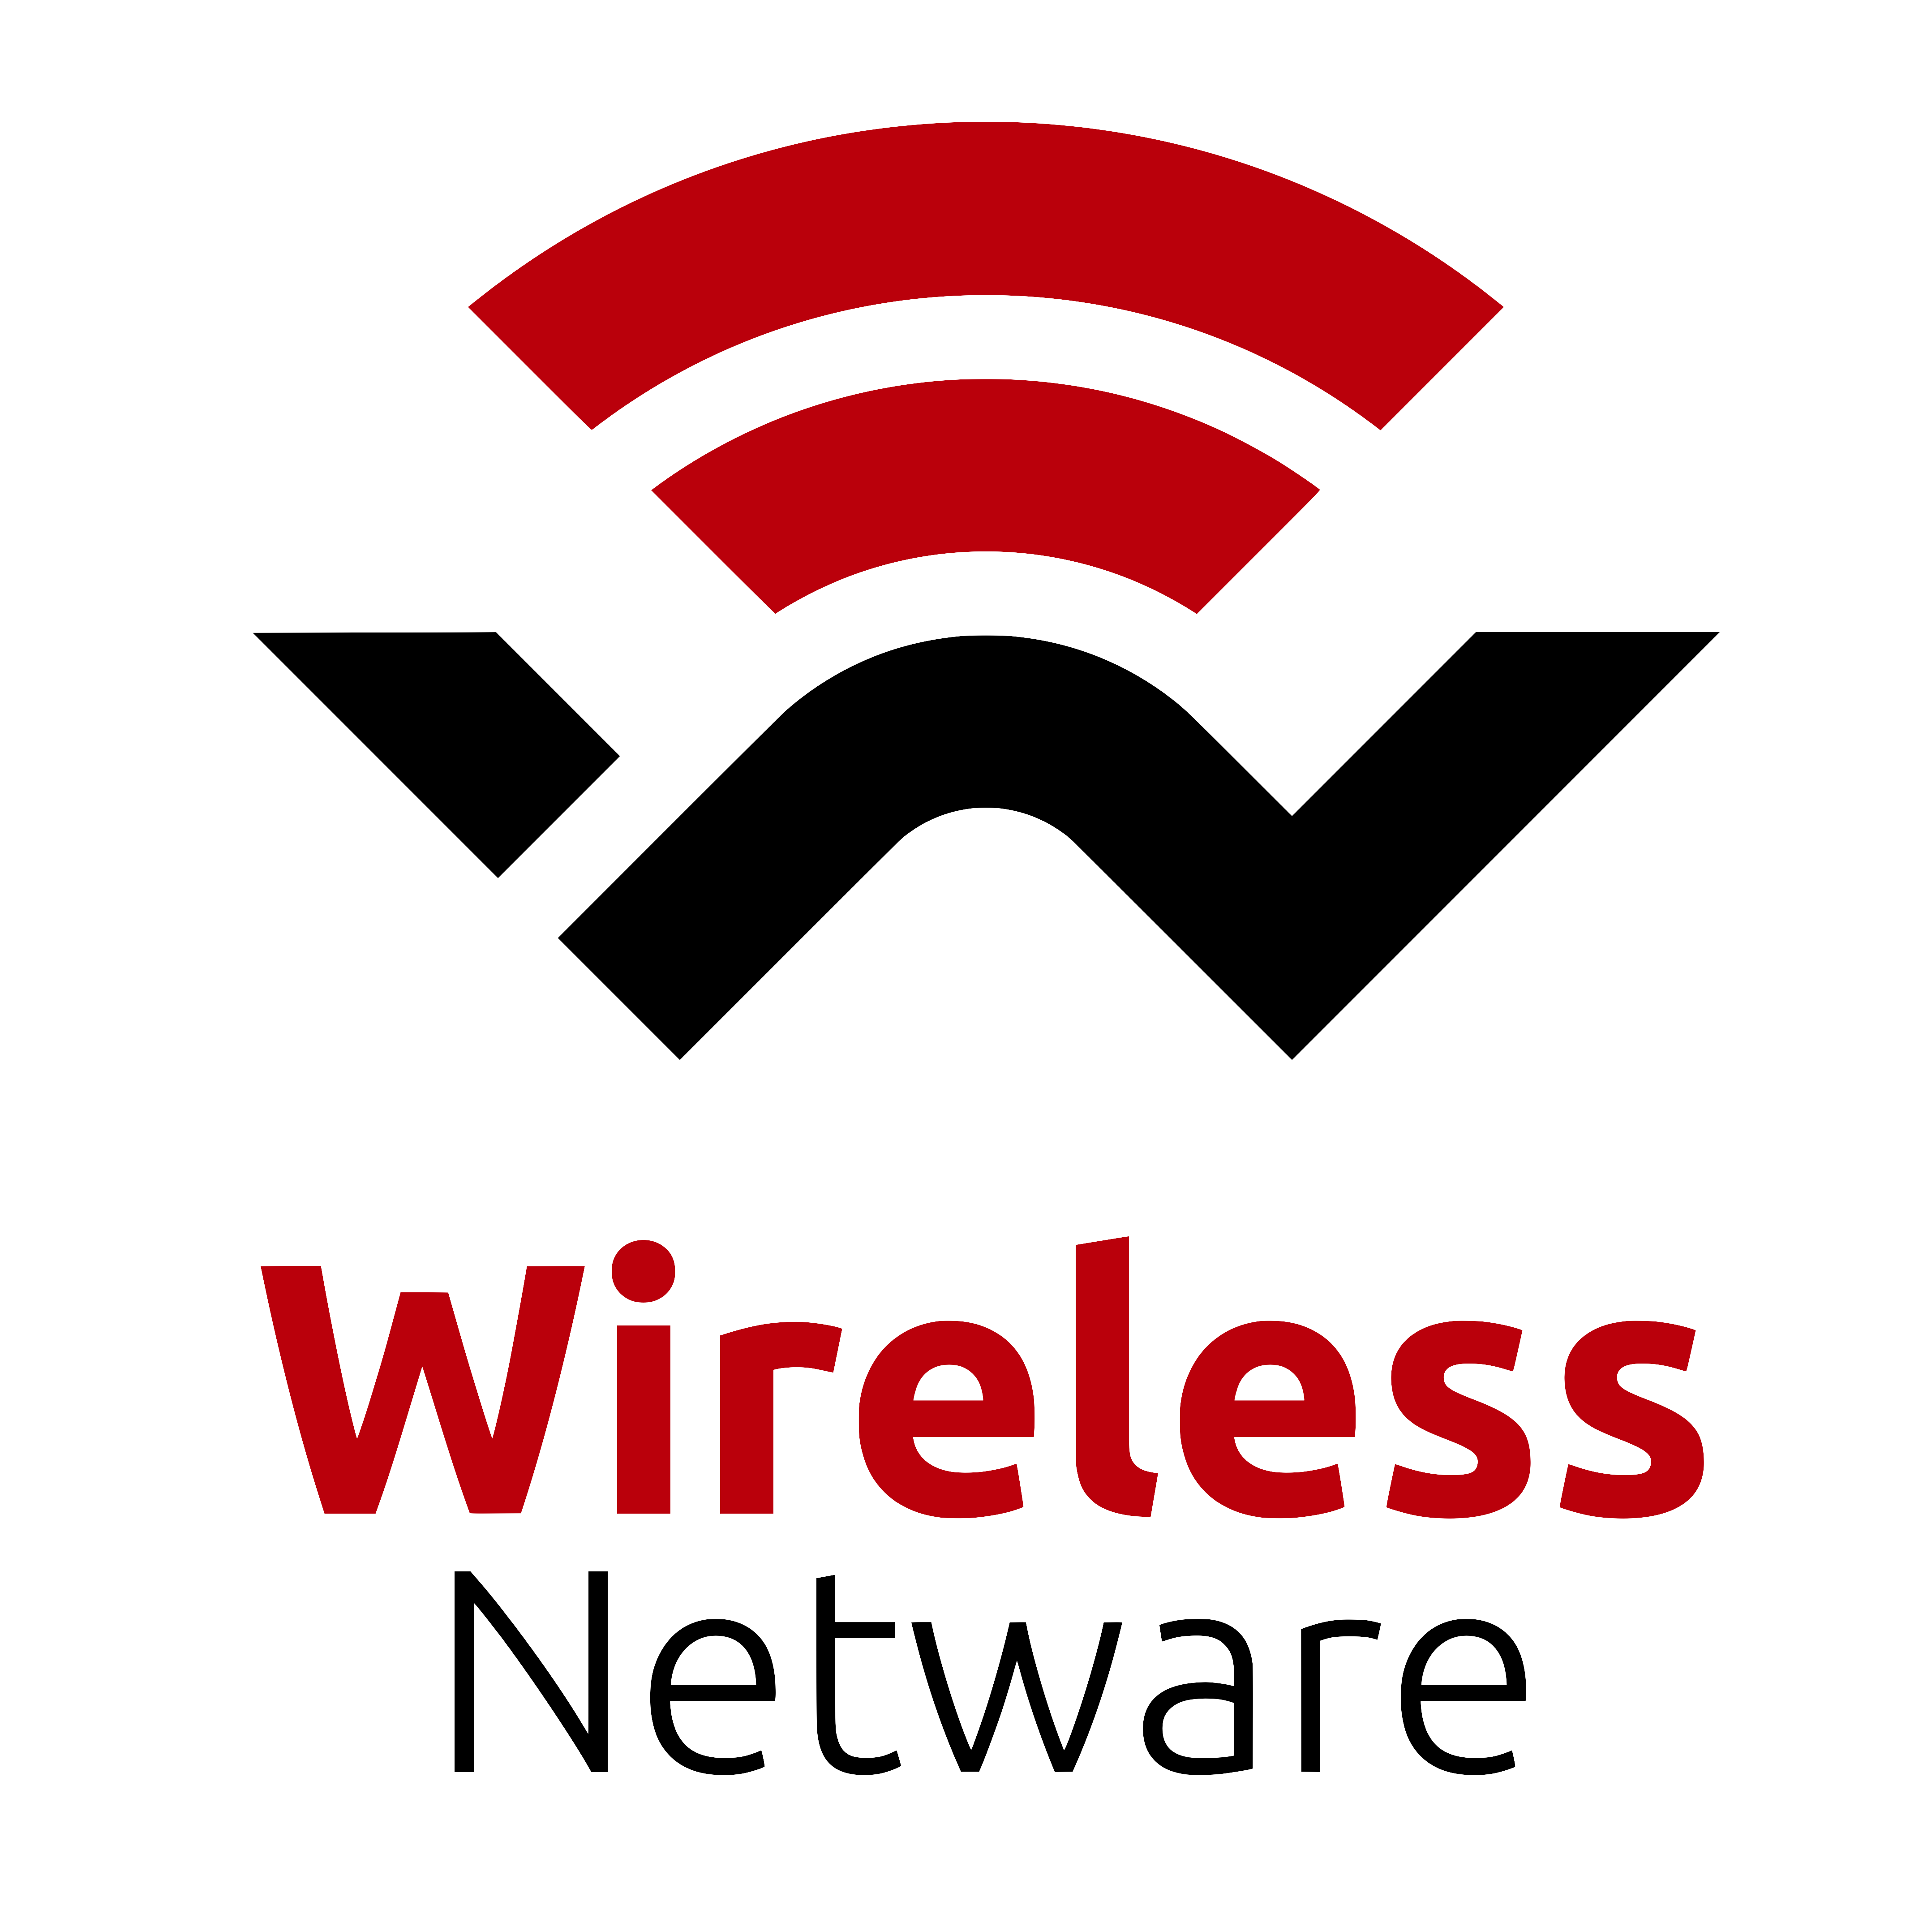 Wireless Netware